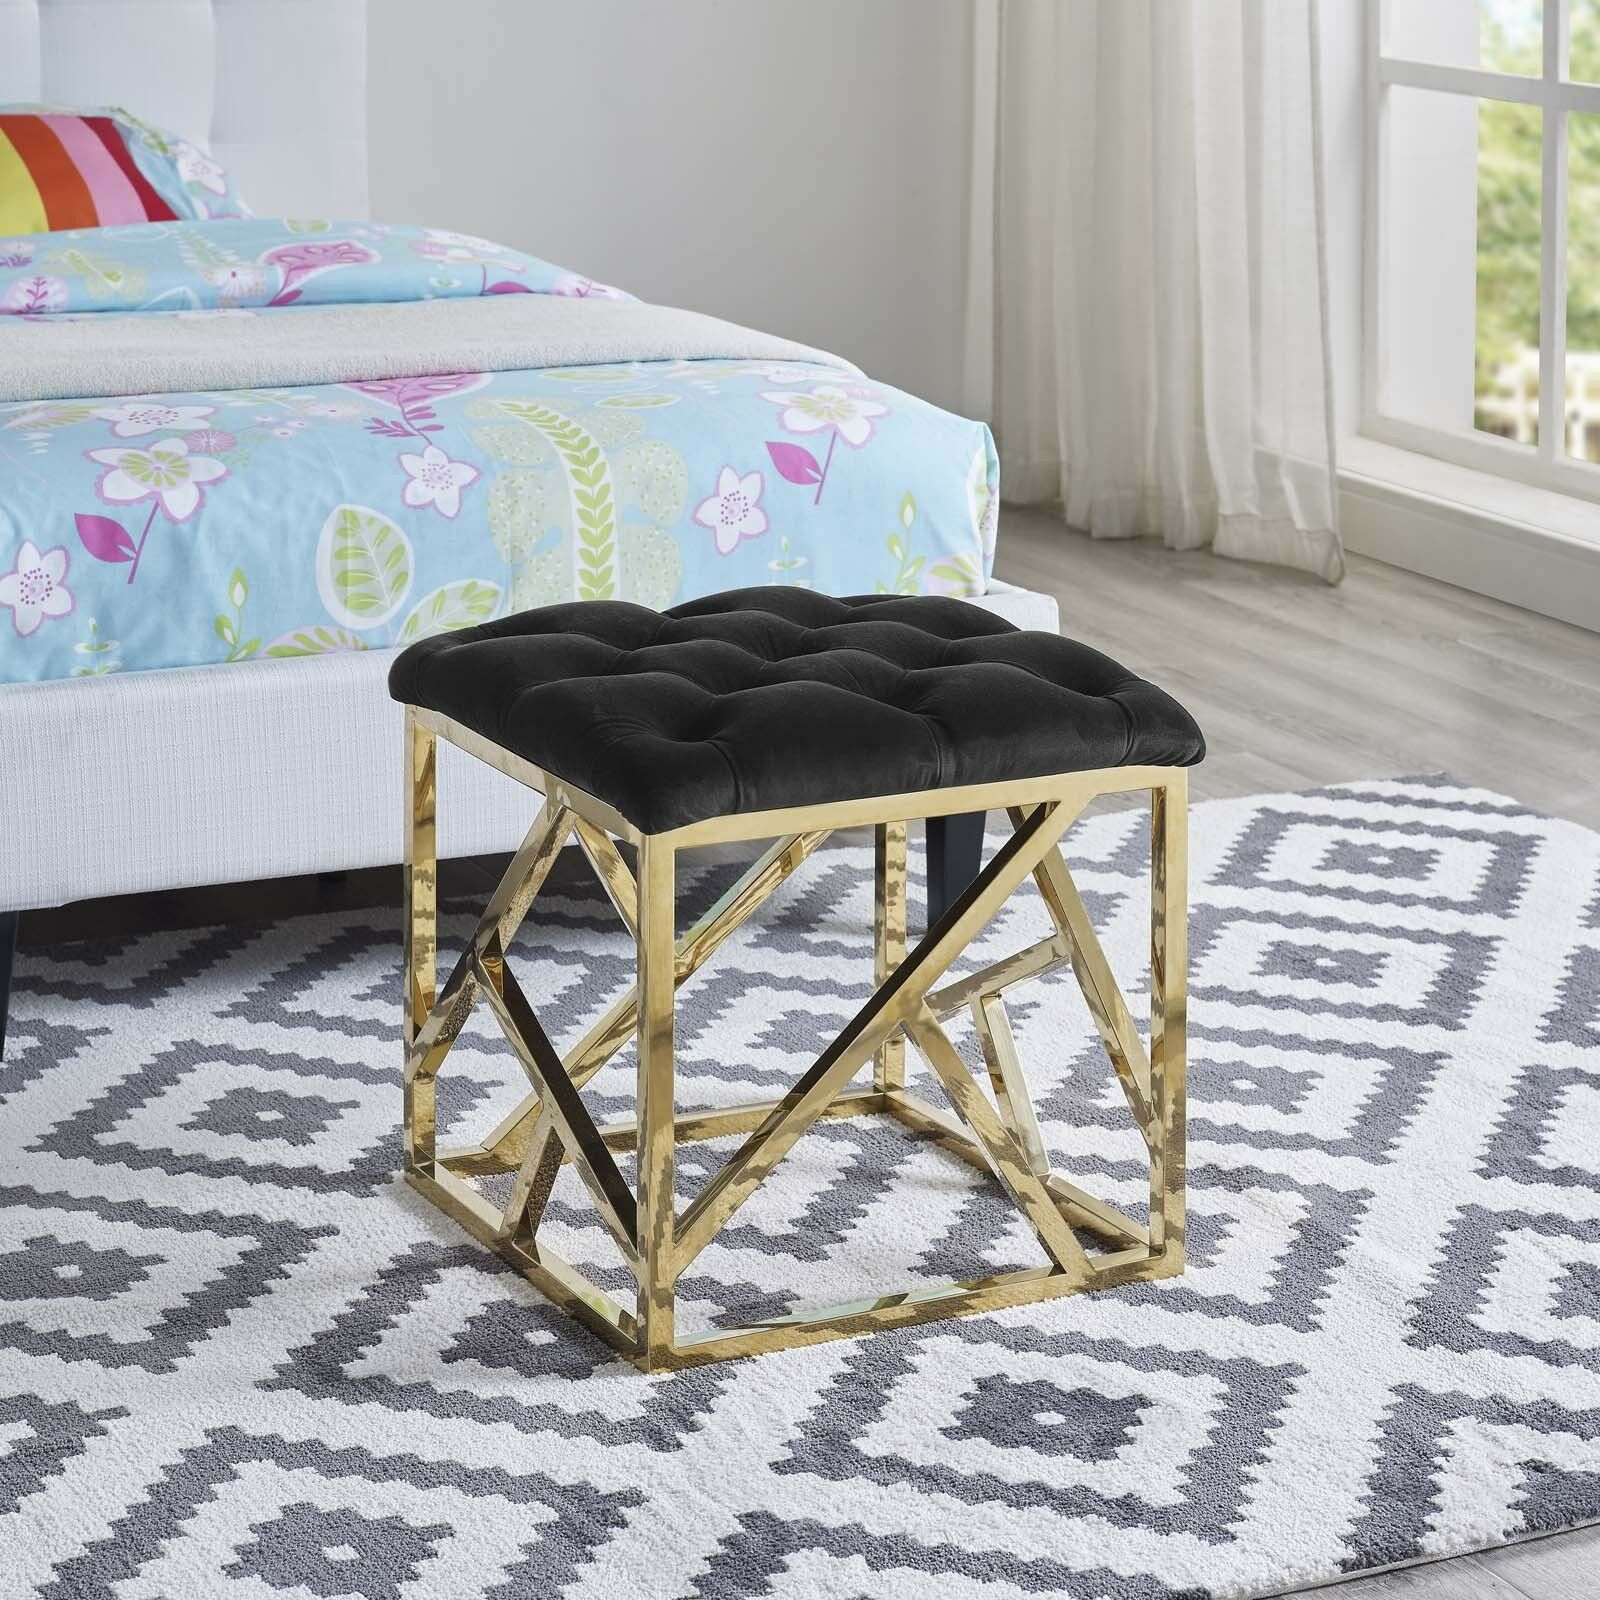 Prime Details About Contemporary Modern Tufted Velvet Geometric Metal Ottoman Bench In Gold Black Pdpeps Interior Chair Design Pdpepsorg